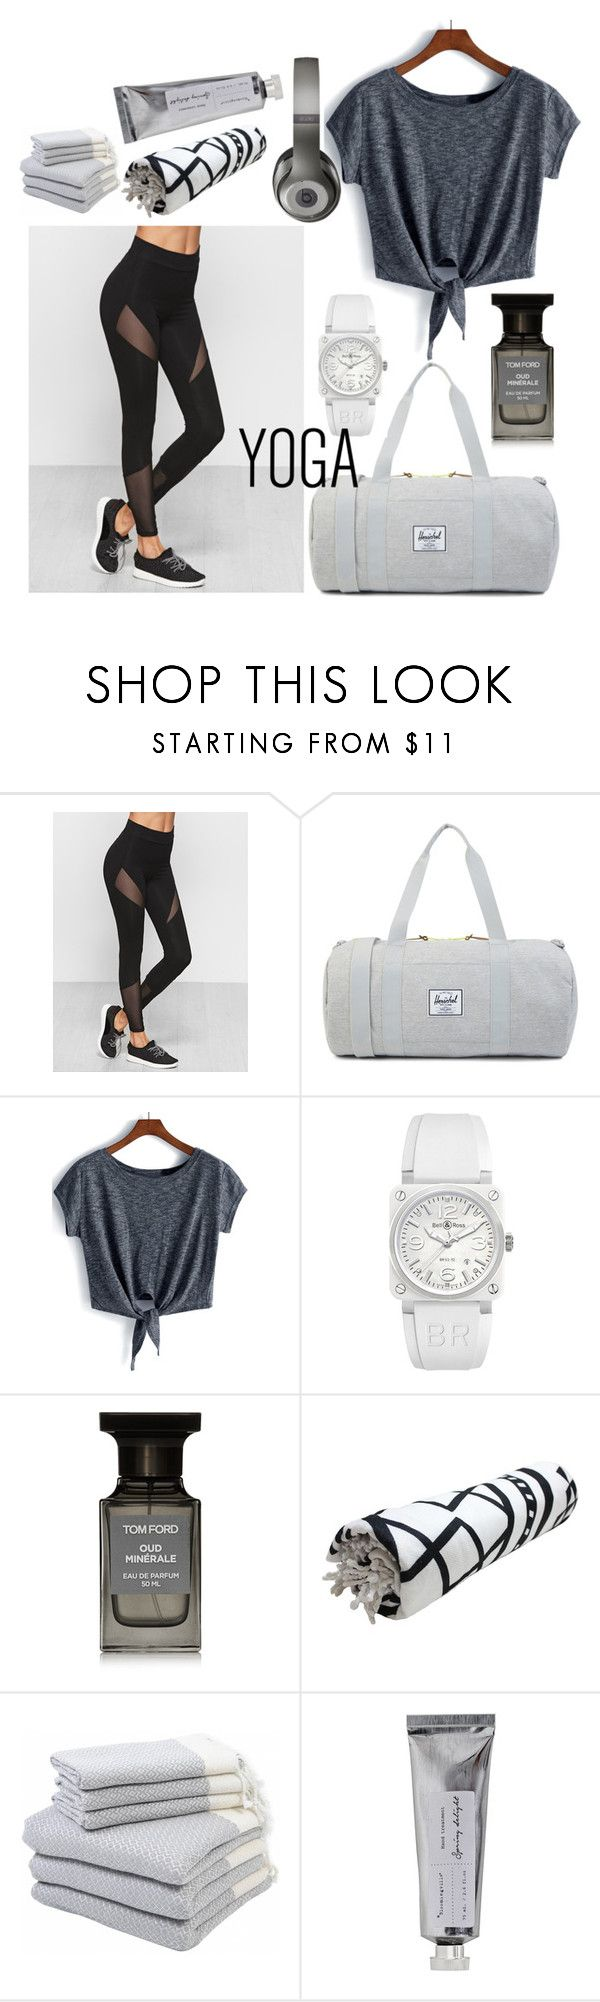 """""""Yoga style"""" by ms-horolceva ❤ liked on Polyvore featuring Bell & Ross, Tom Ford, Hamam, Bloomingville and Beats by Dr. Dre"""